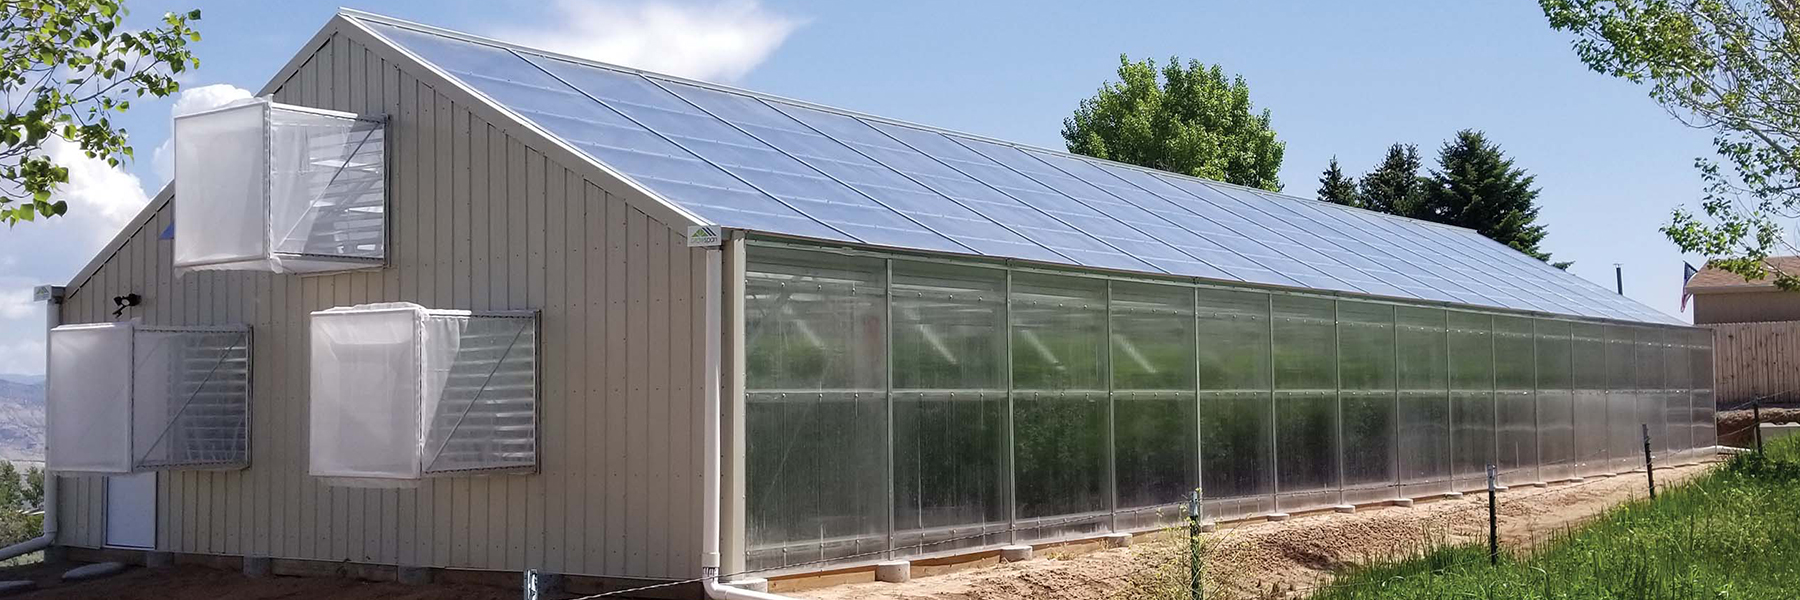 Parachutte Greenhouse